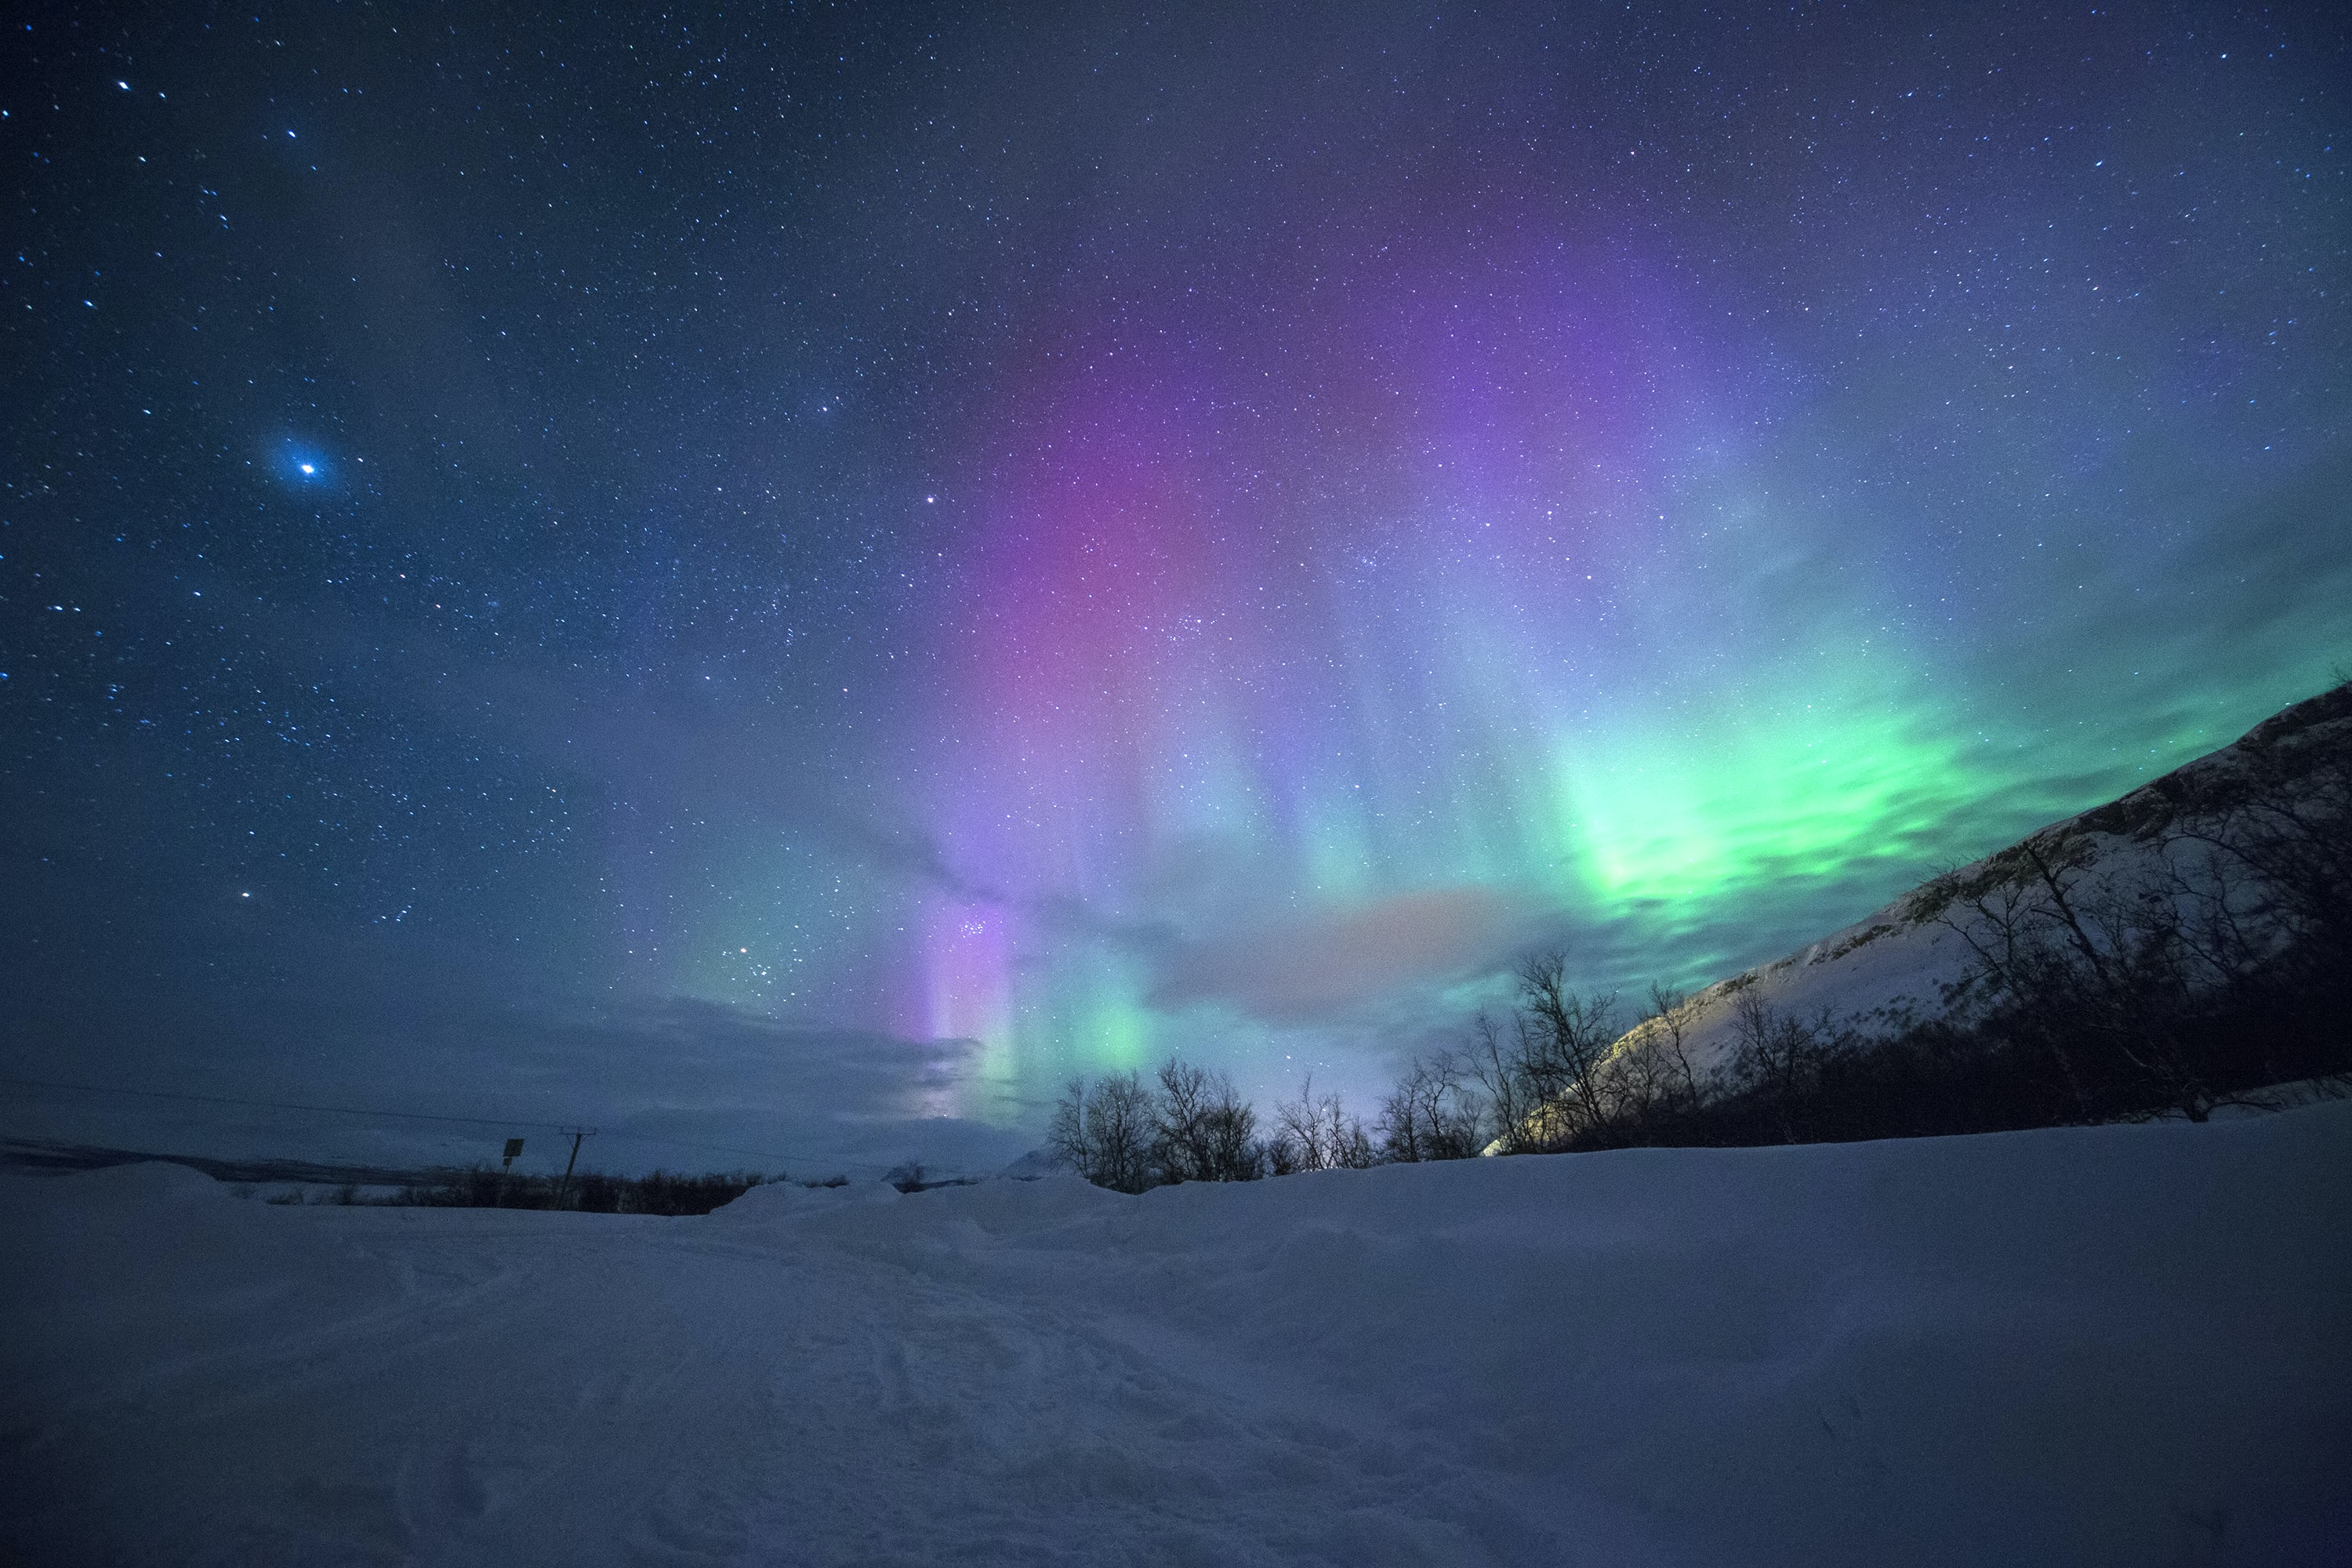 northern lights over snow-capped mountian